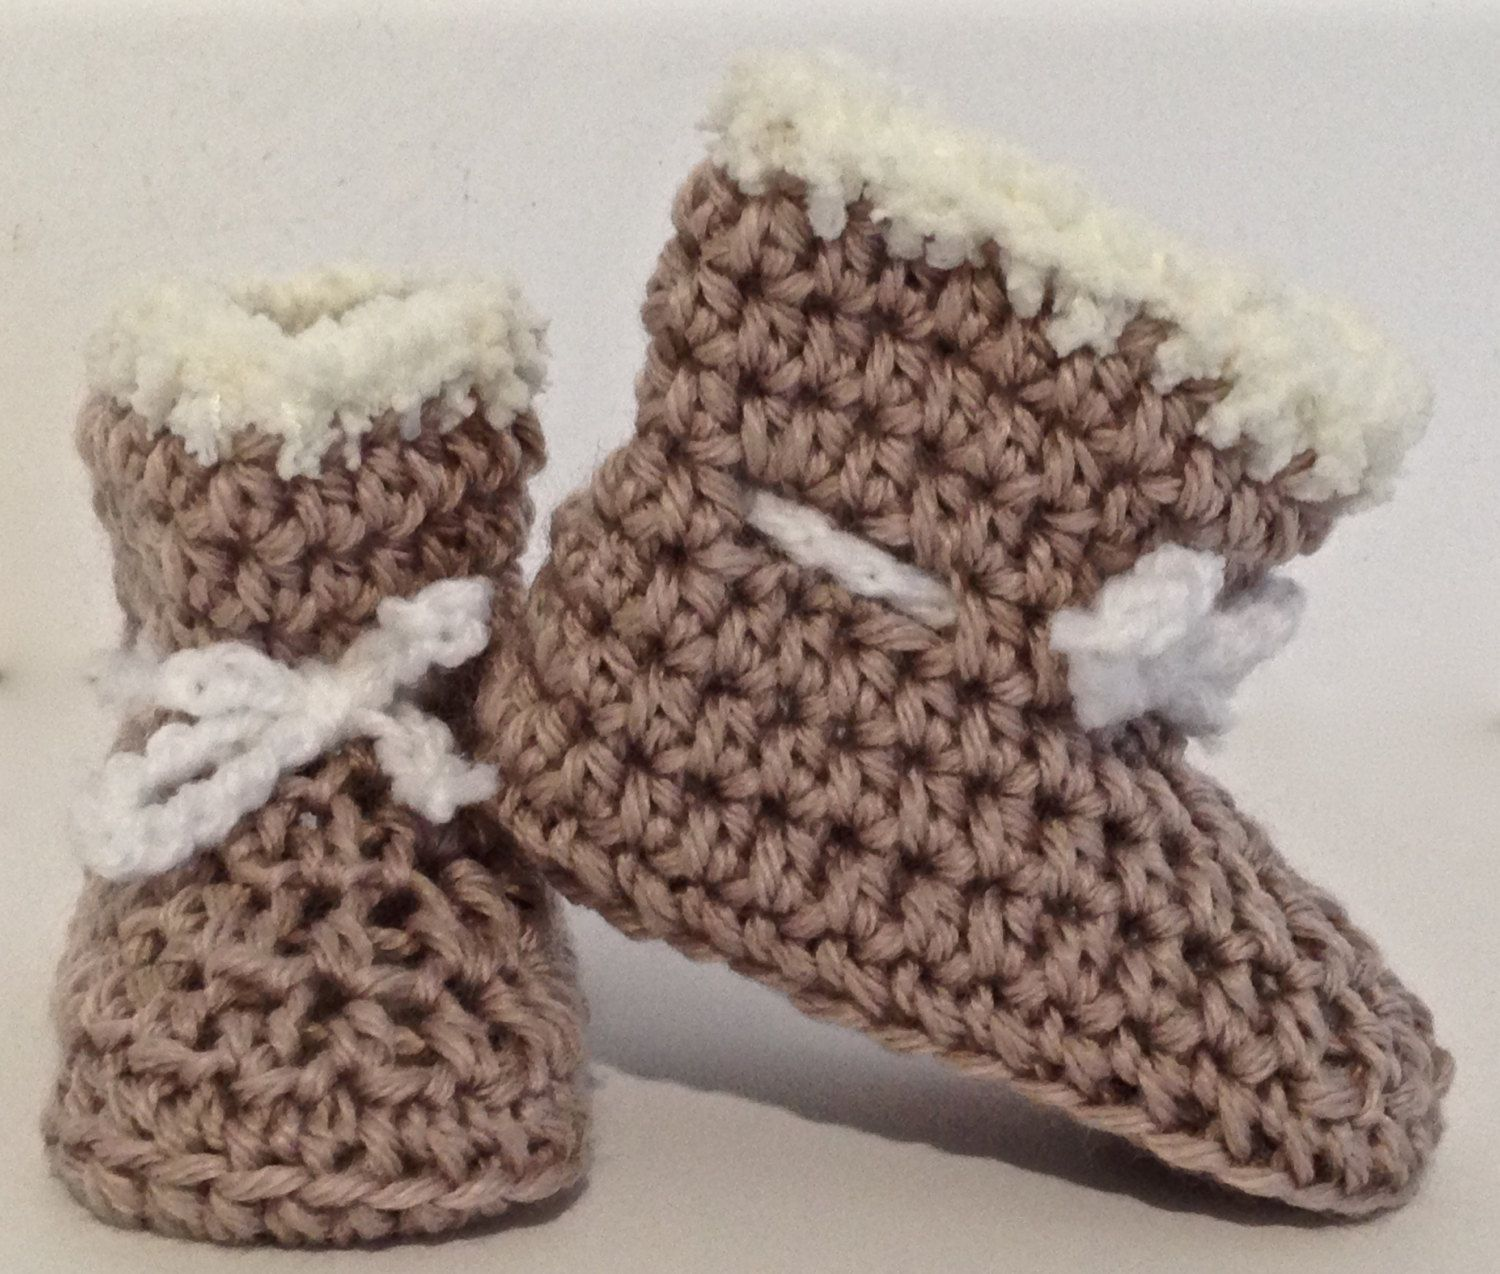 Crochet Brown and White Baby Uggs/Boots - Fits birth - 3 months by PreciousPossums